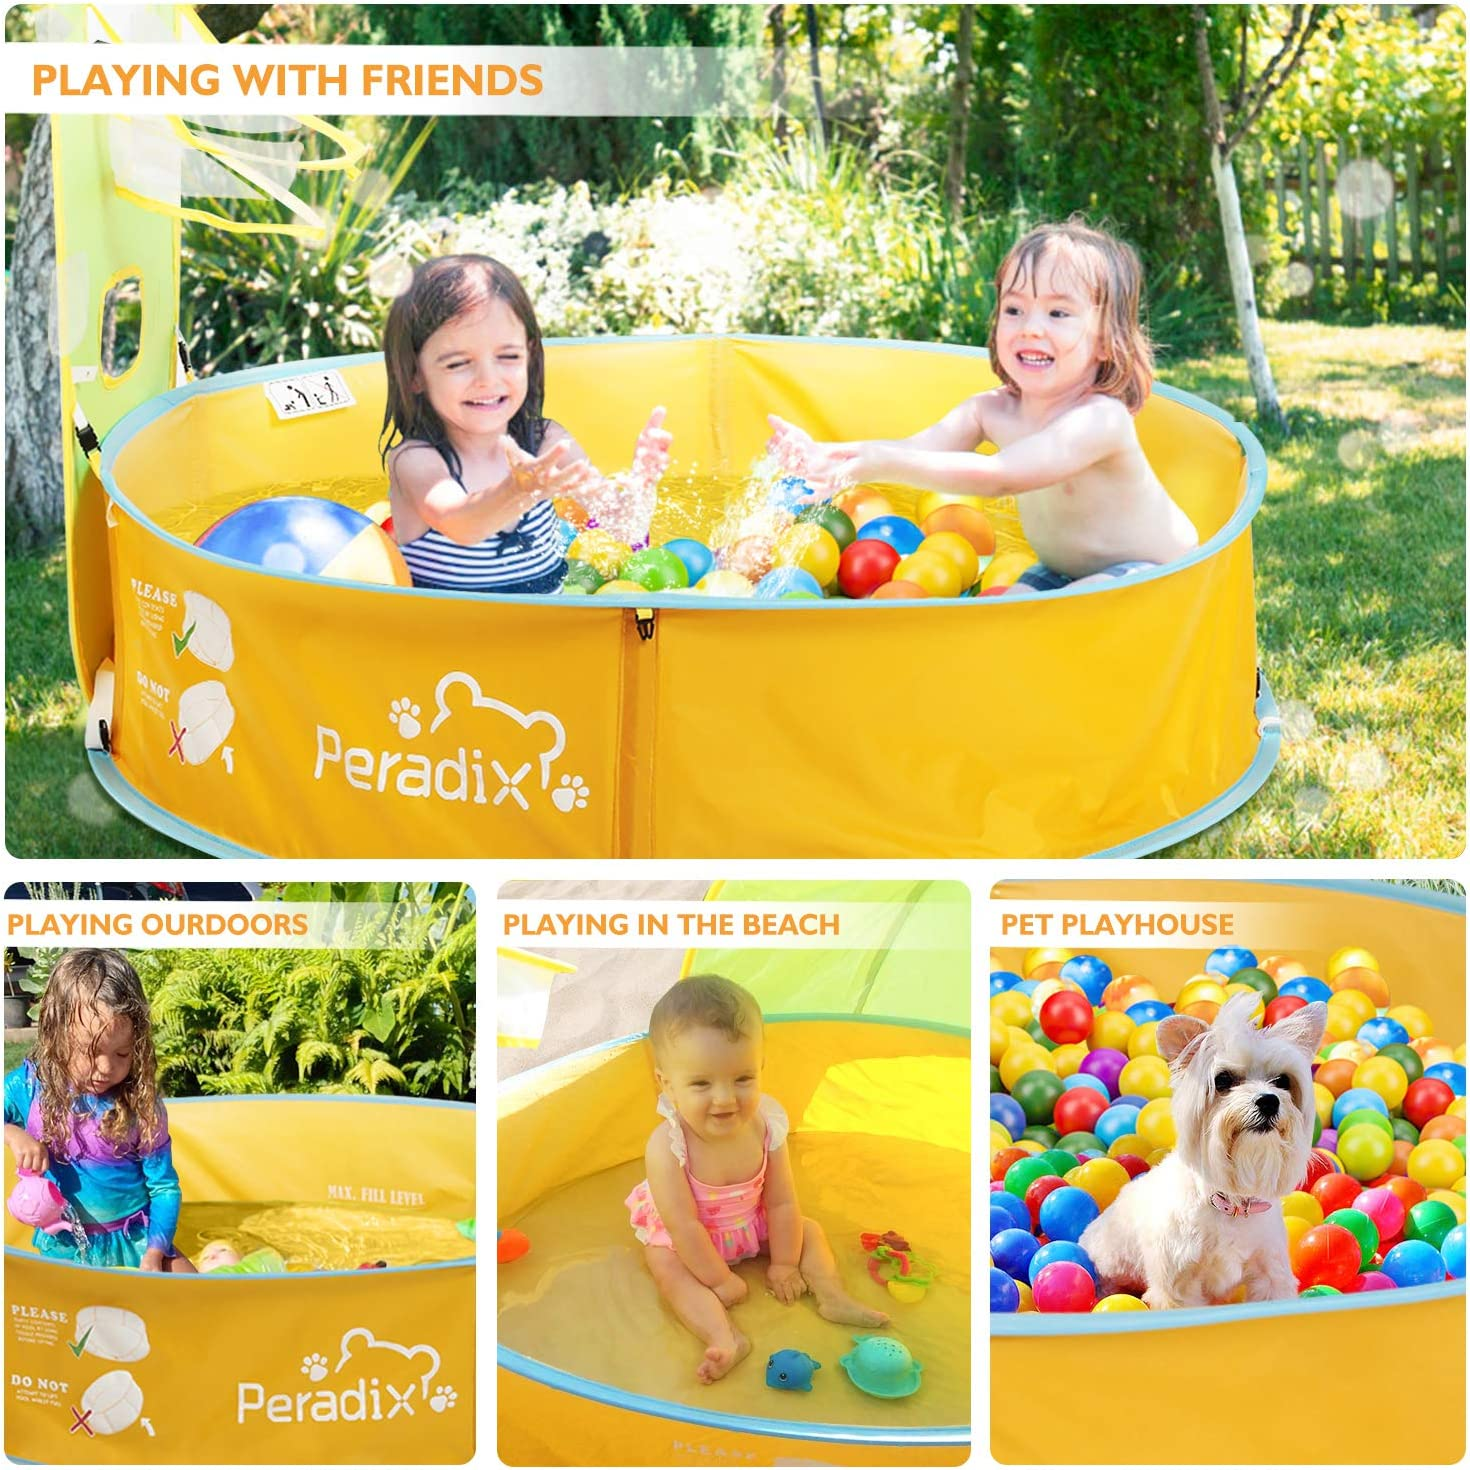 Peradix Kids Ball Pit Play Tent Outdoor//Garden Paddling Pool for Kids 2 in 1 Toddler Pop Up Tent with Basketball Hoop and Zippered Storage Bag for Baby//Children Indoor